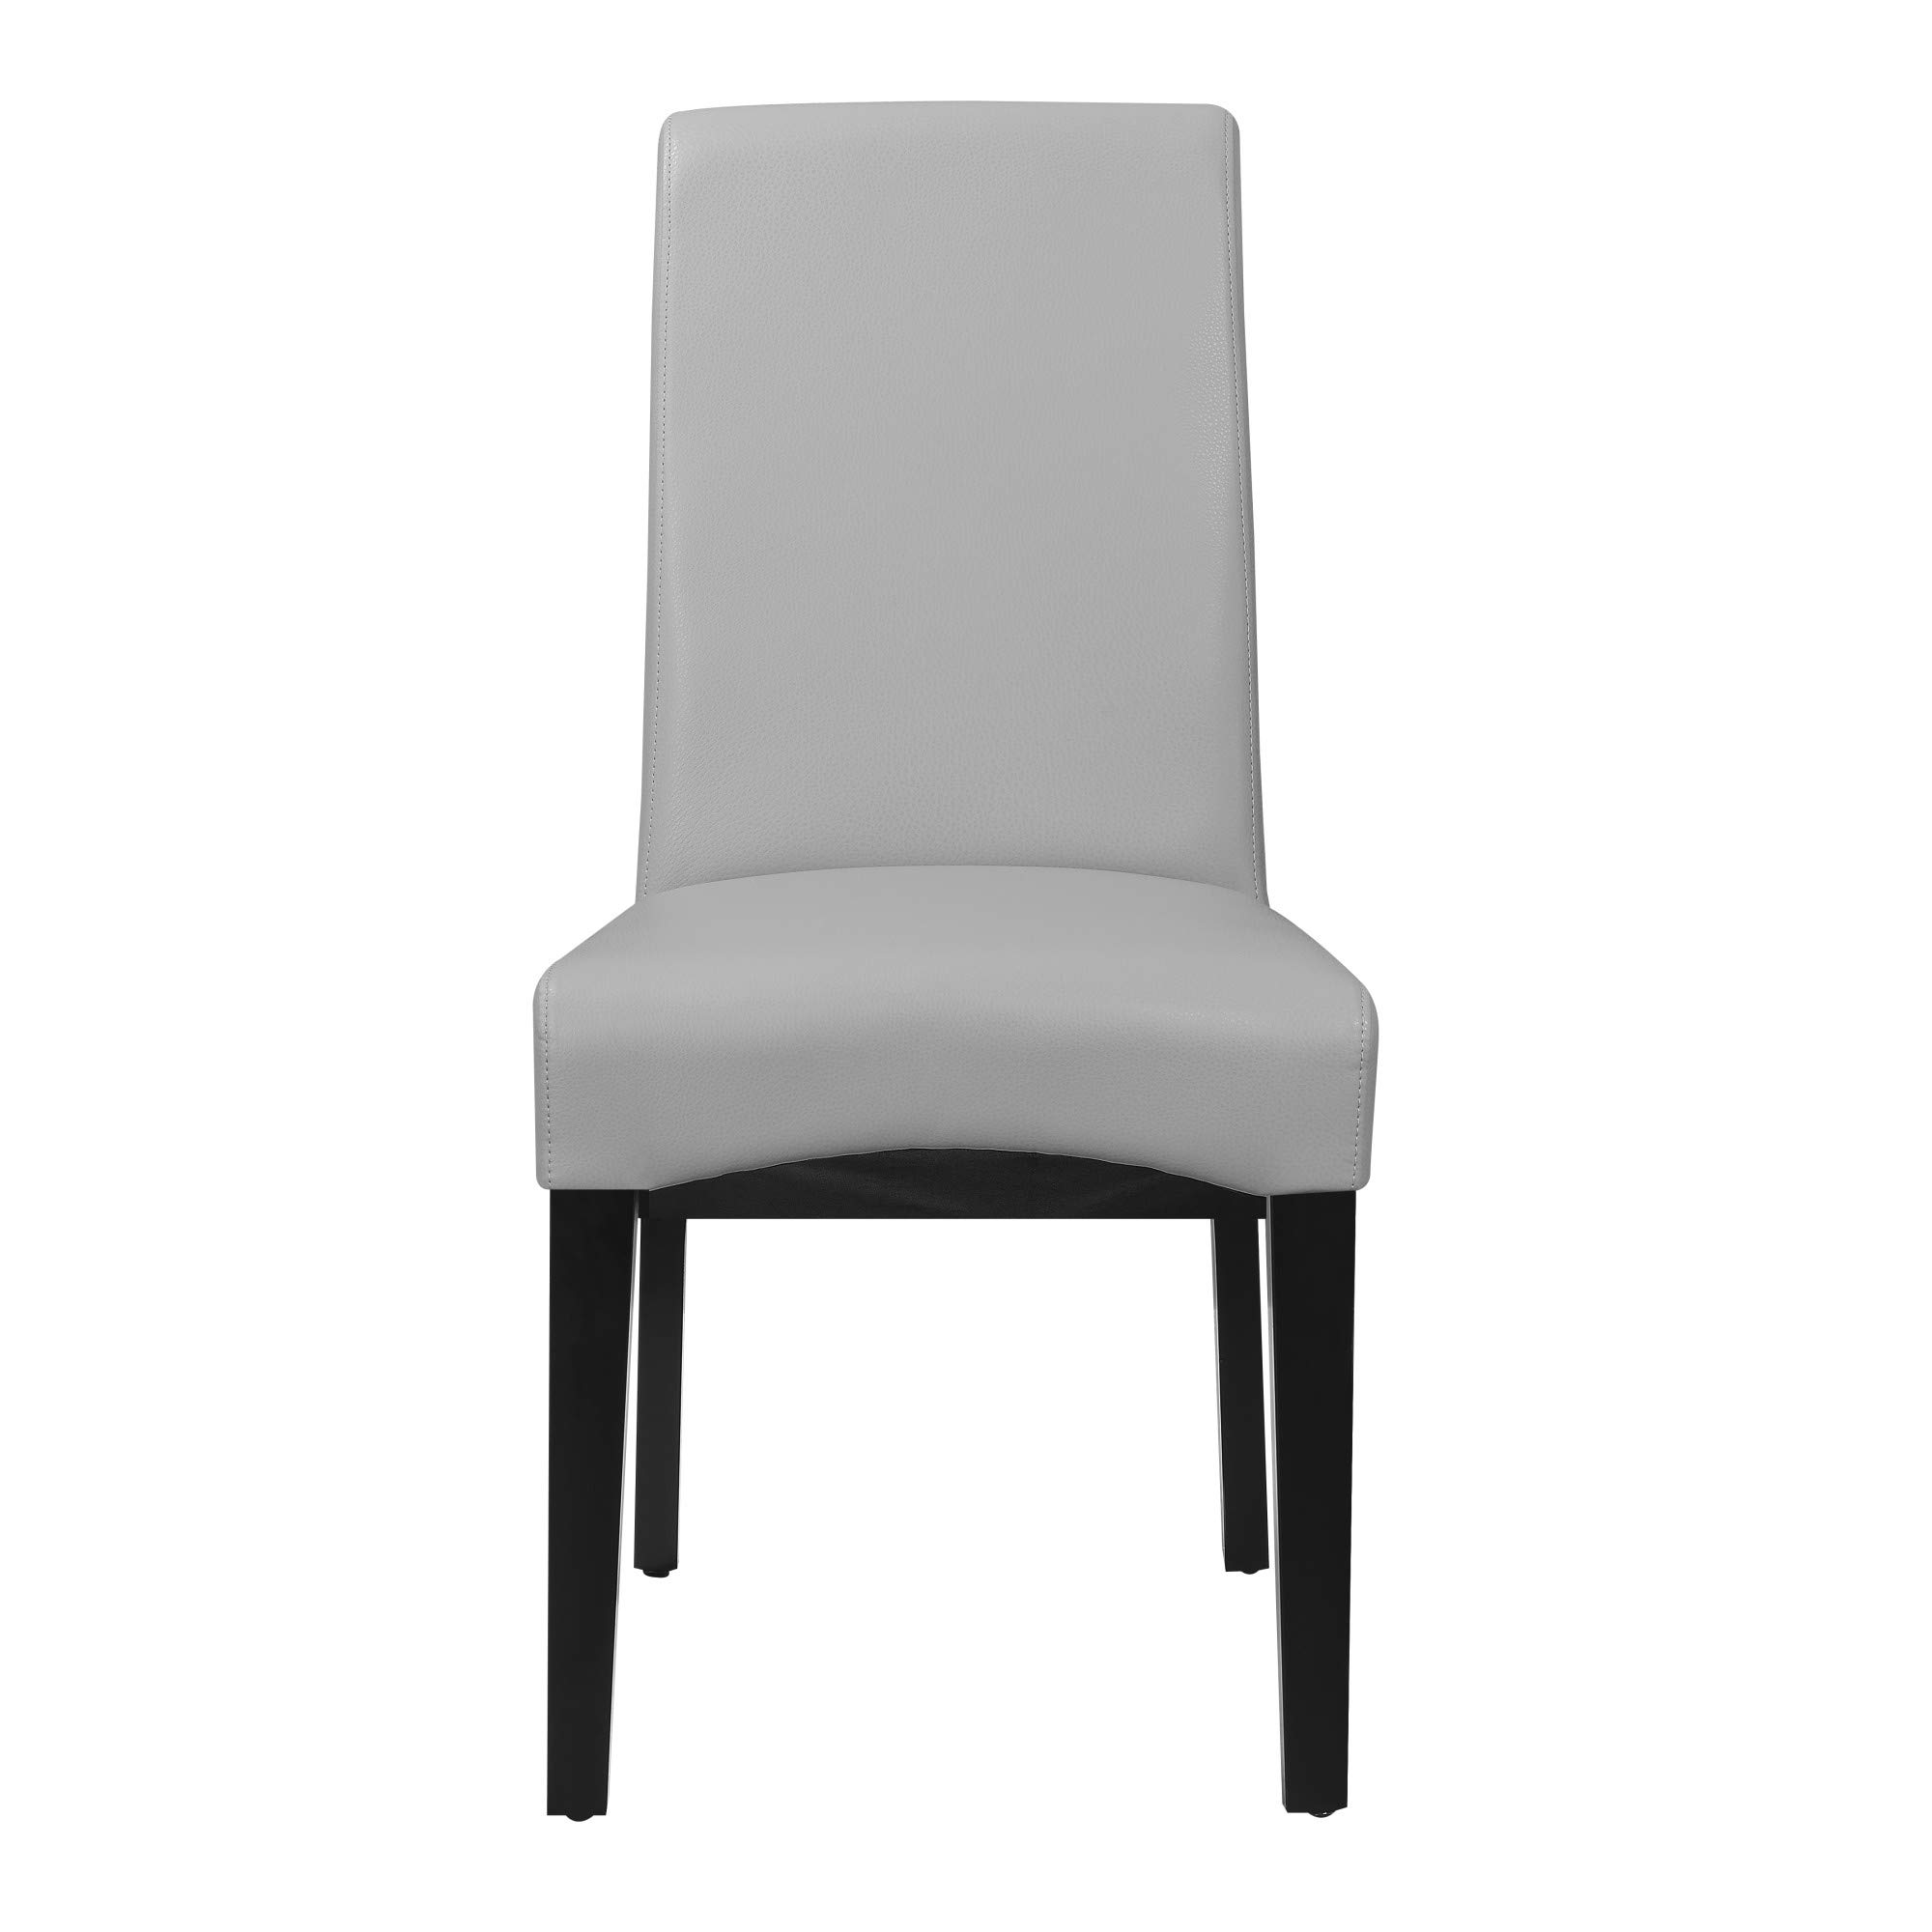 Livingston II Upholstered Dining Chair in Soft Gray with Faux Leather Upholstery And Curved Back, Set of Two, by Artum Hill by Artum Hill (Image #3)